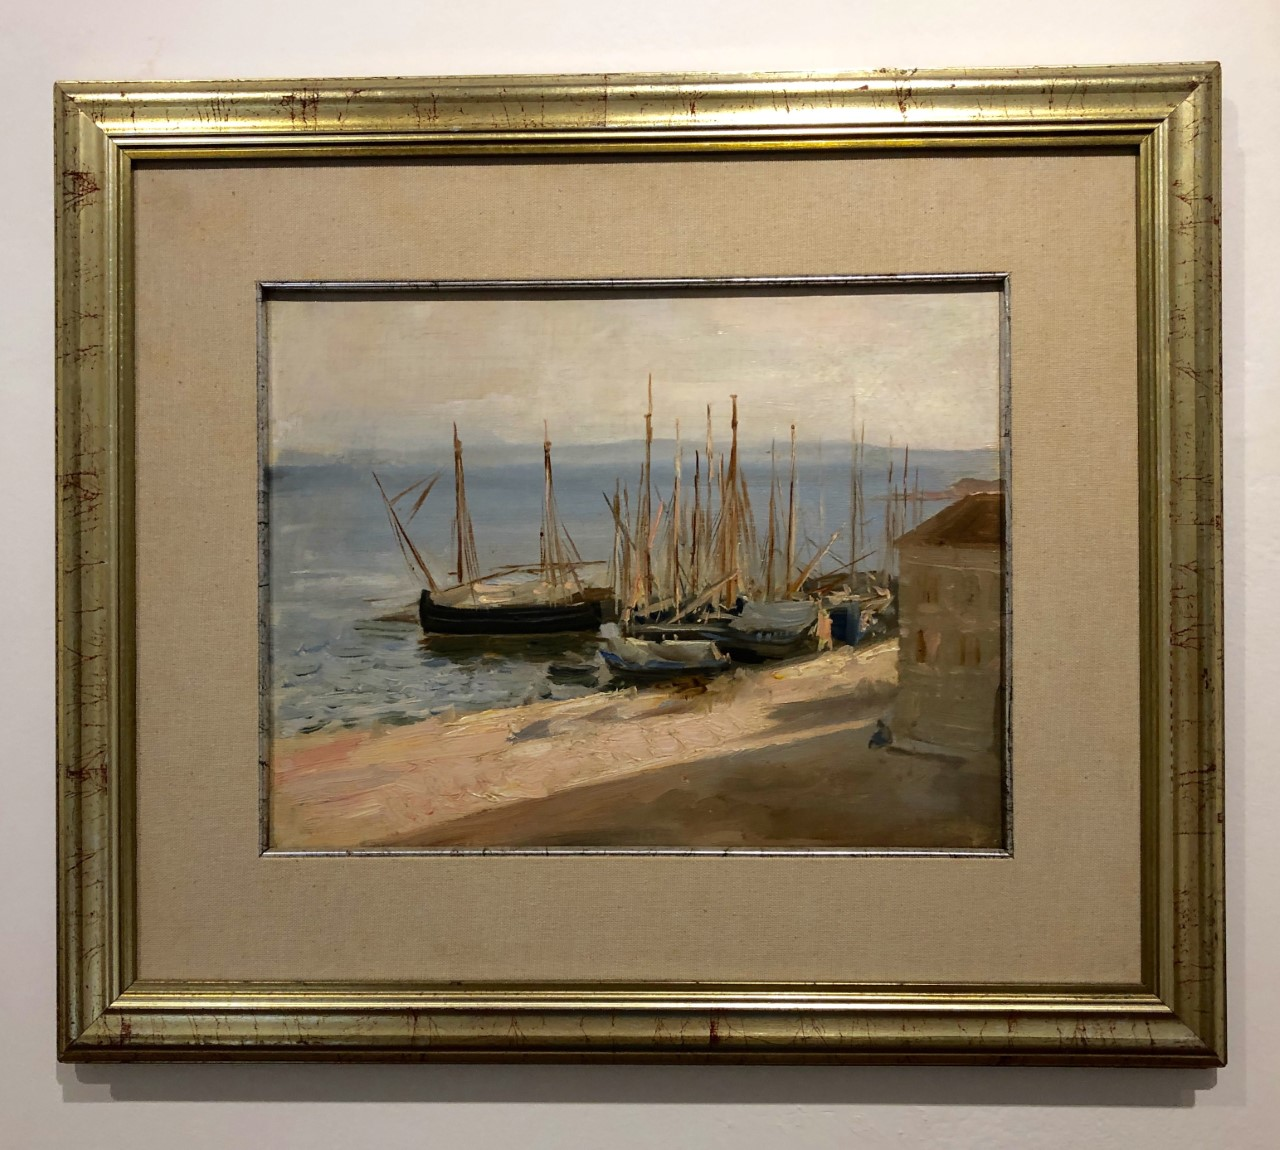 Modern Art of Croatia: Visiting the Museum of Modern Art Dubrovnik